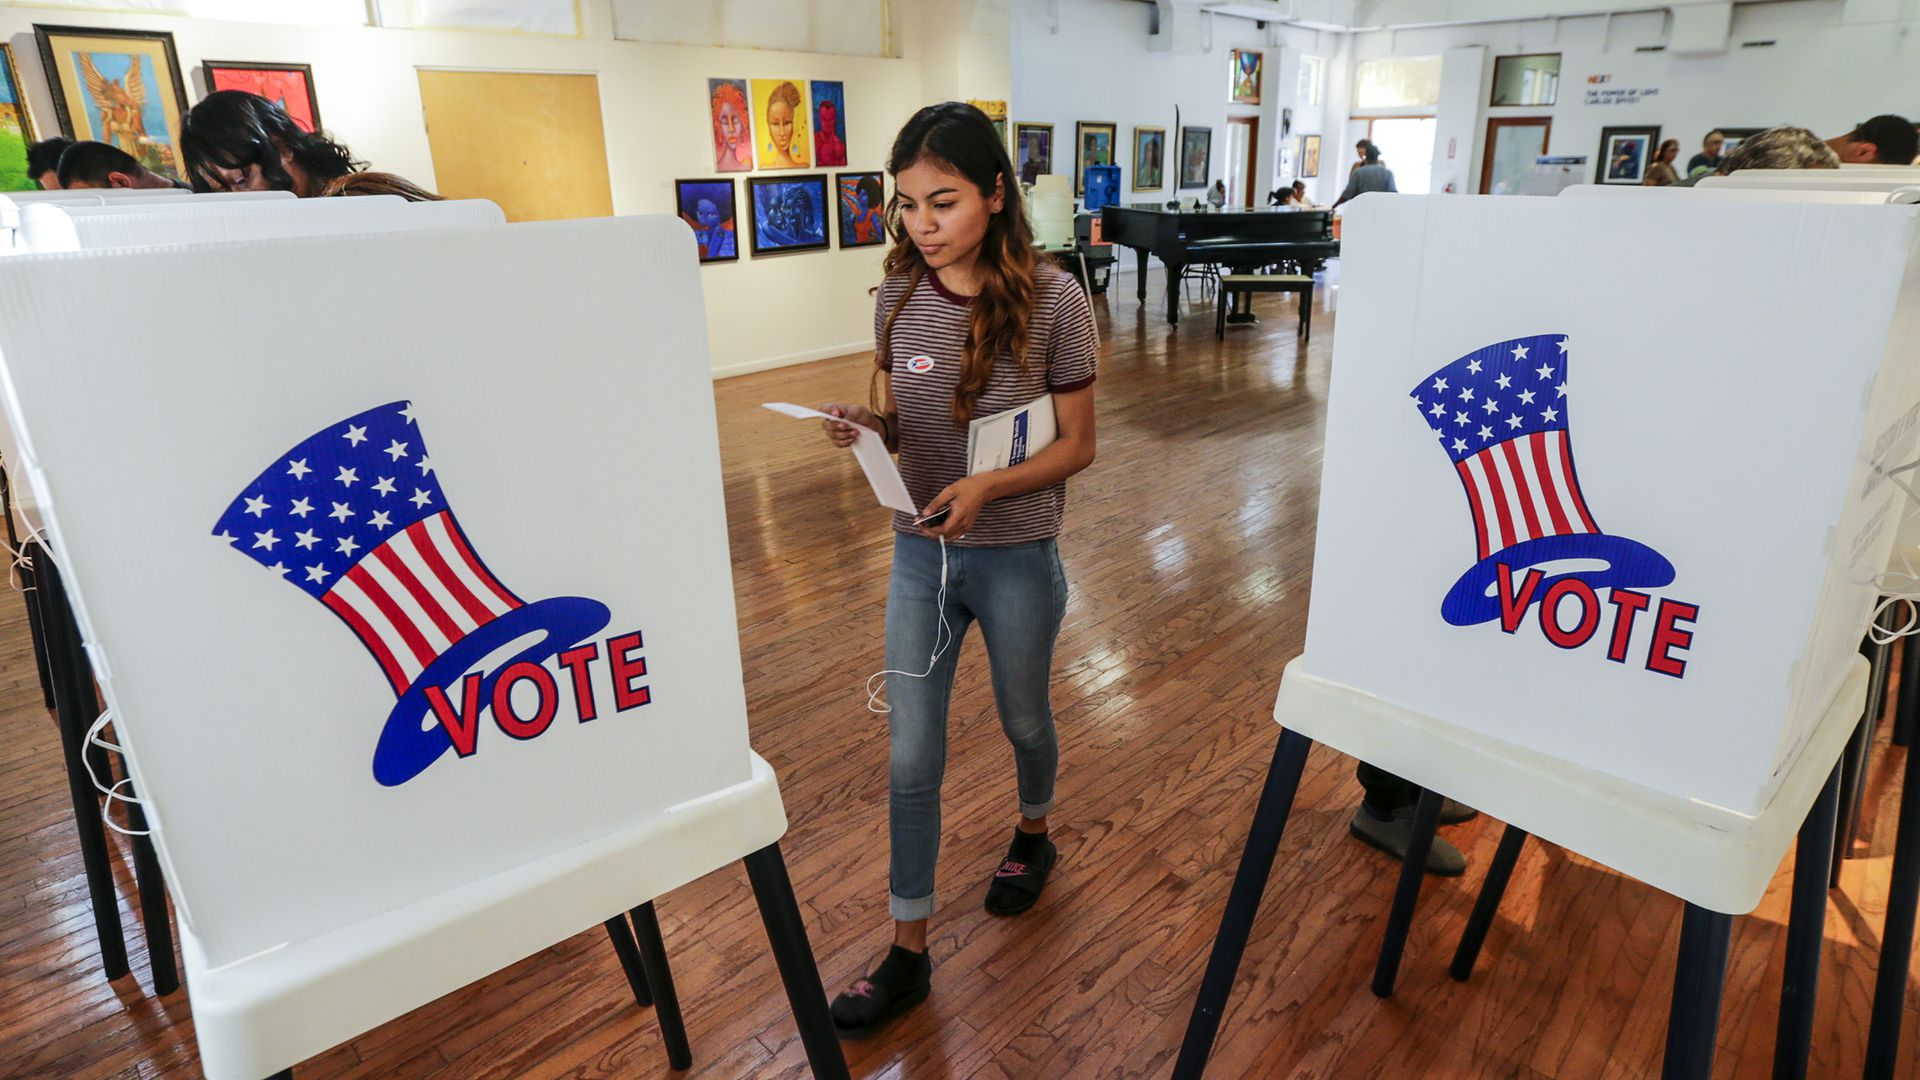 A voter going to the polls